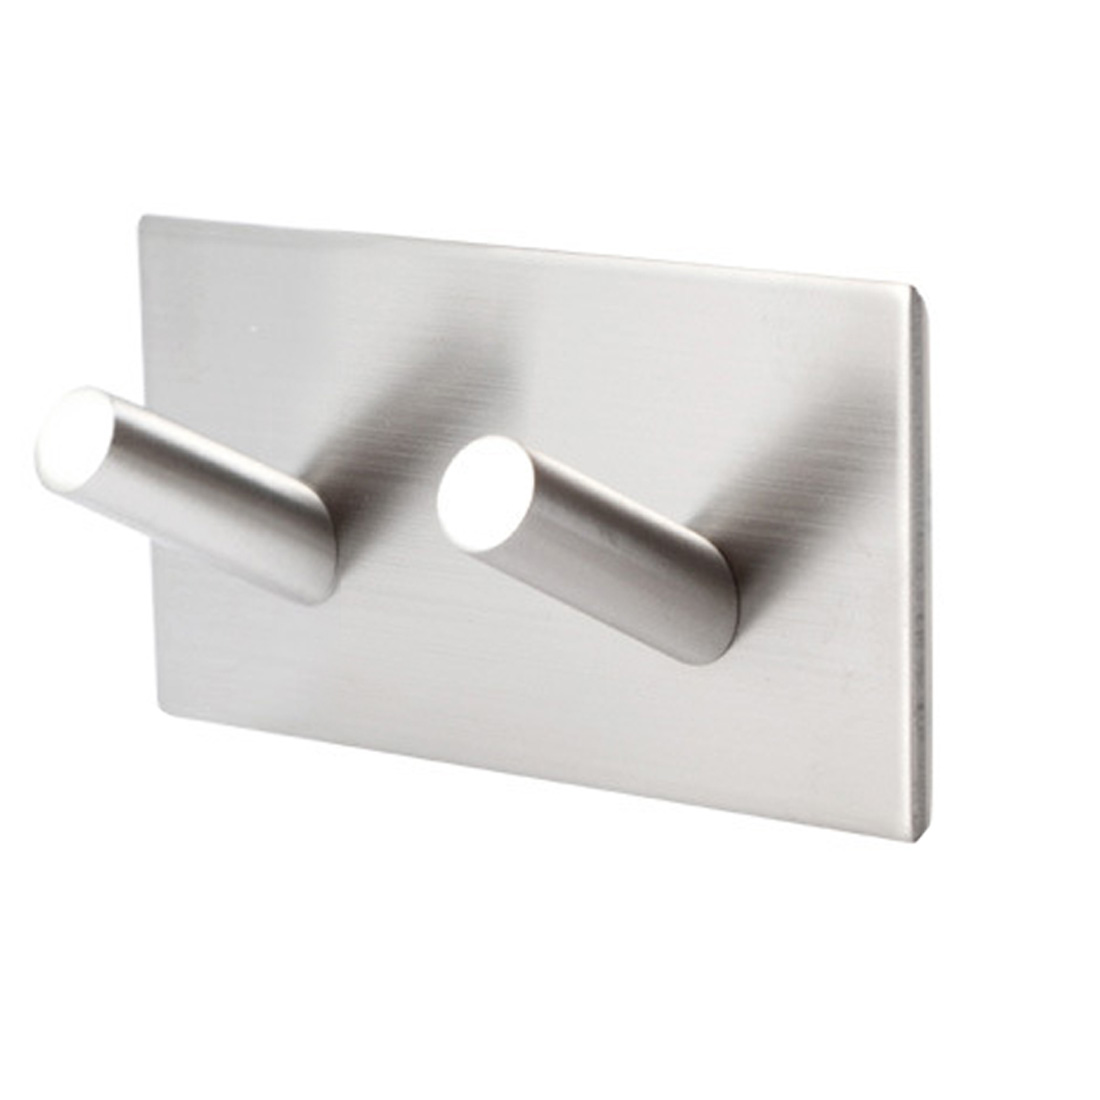 Stainless bathroom accessories - Self Adhesive Bathroom Accessories